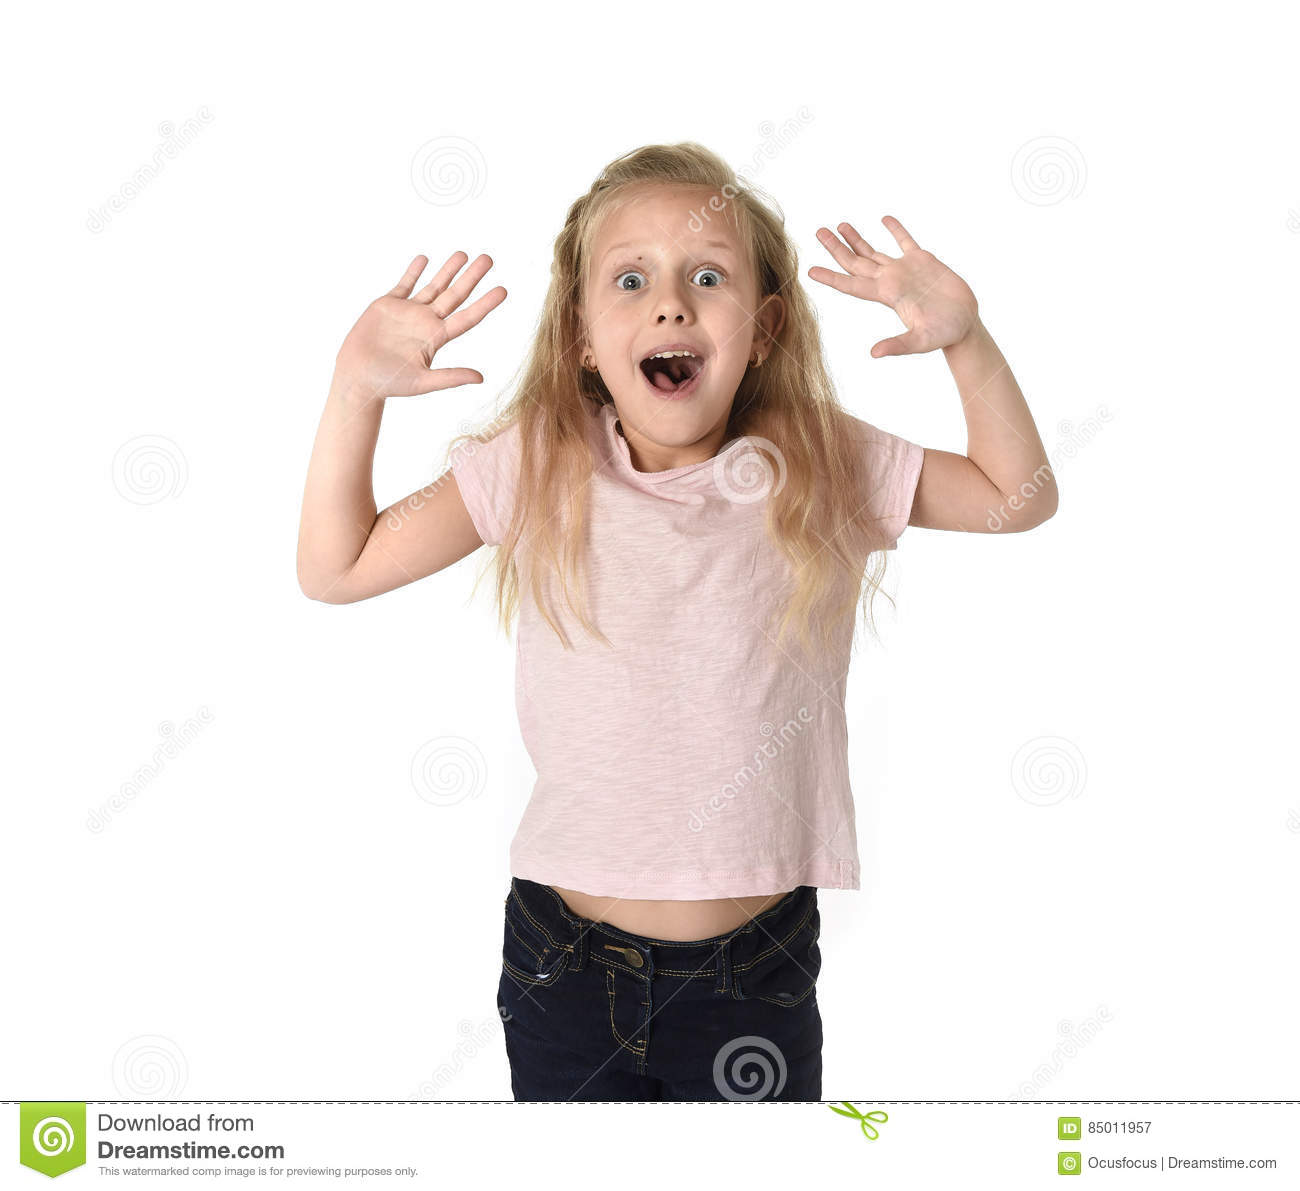 cute and sweet little girl in disbelief and surprise face expression looking amazed in schock